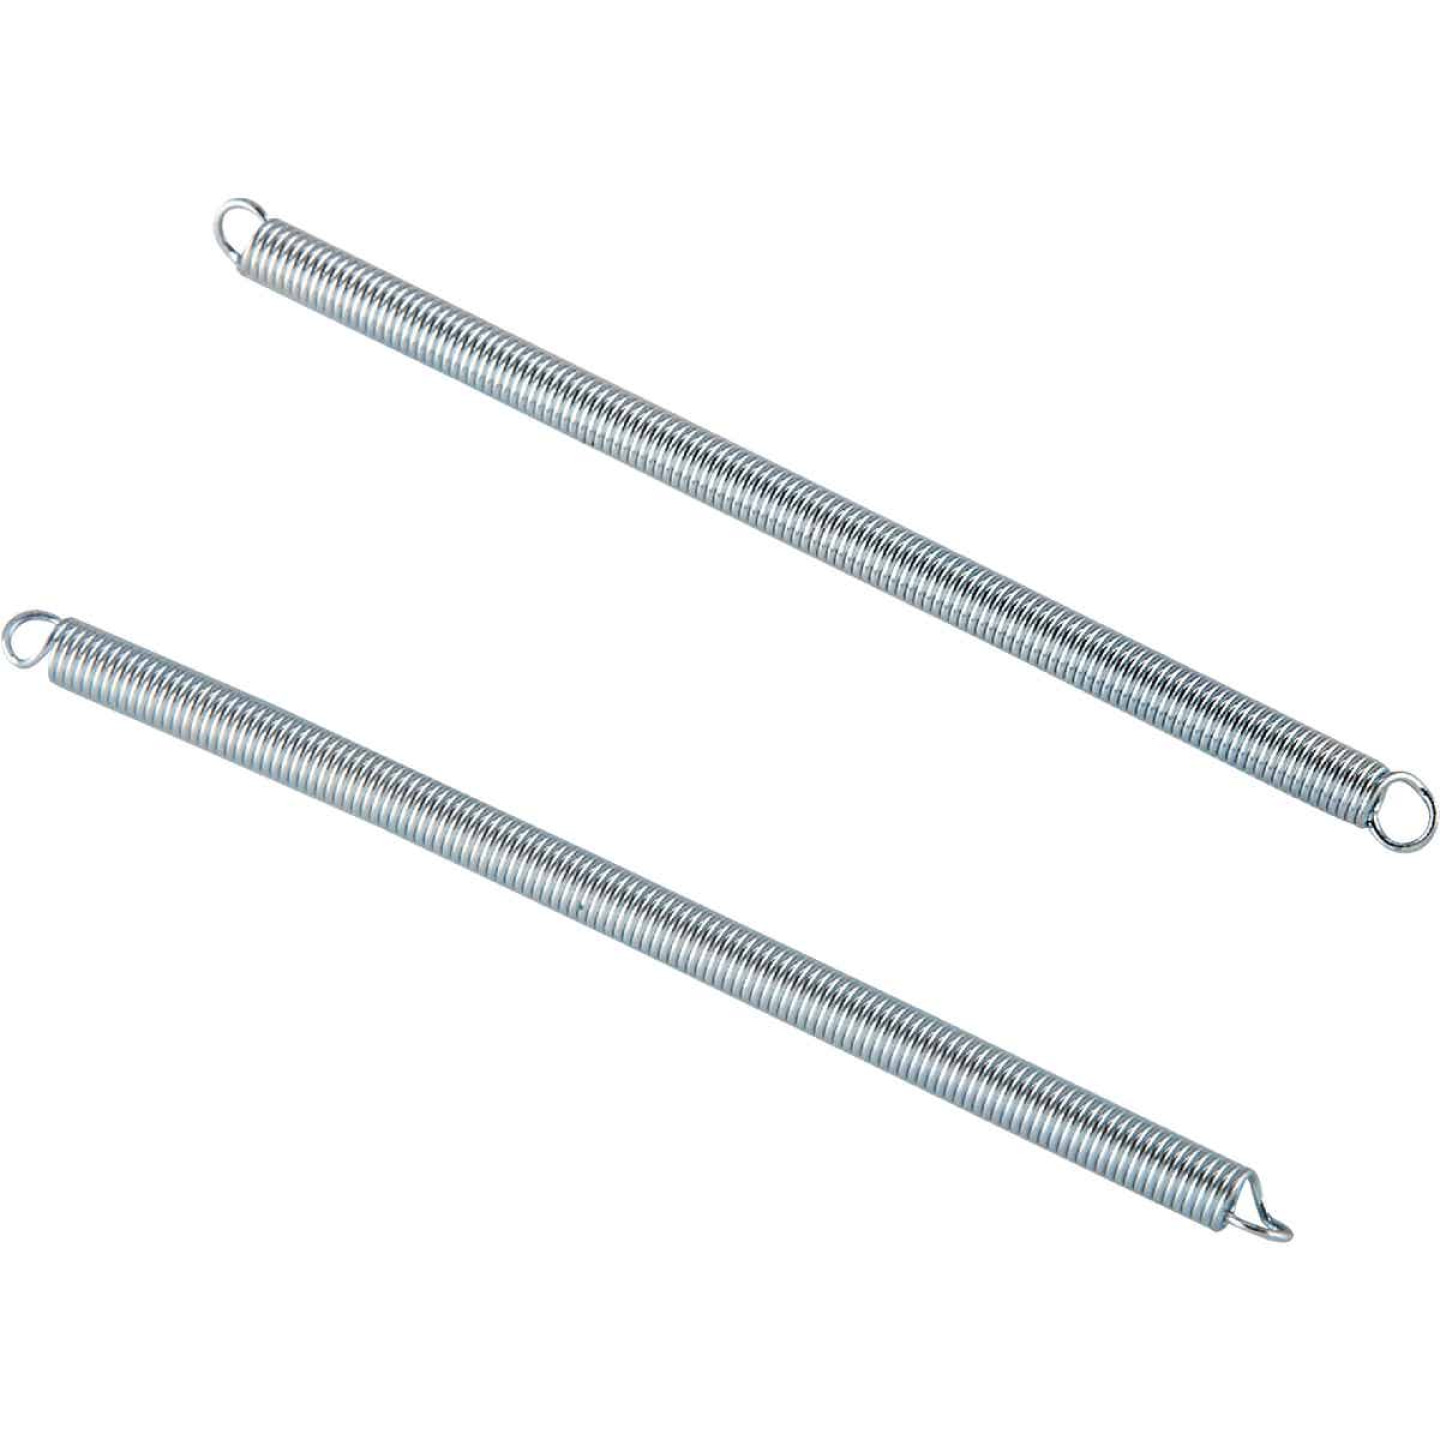 Century Spring 3-3/4 In. x 3/4 In. Extension Spring (2 Count) Image 1